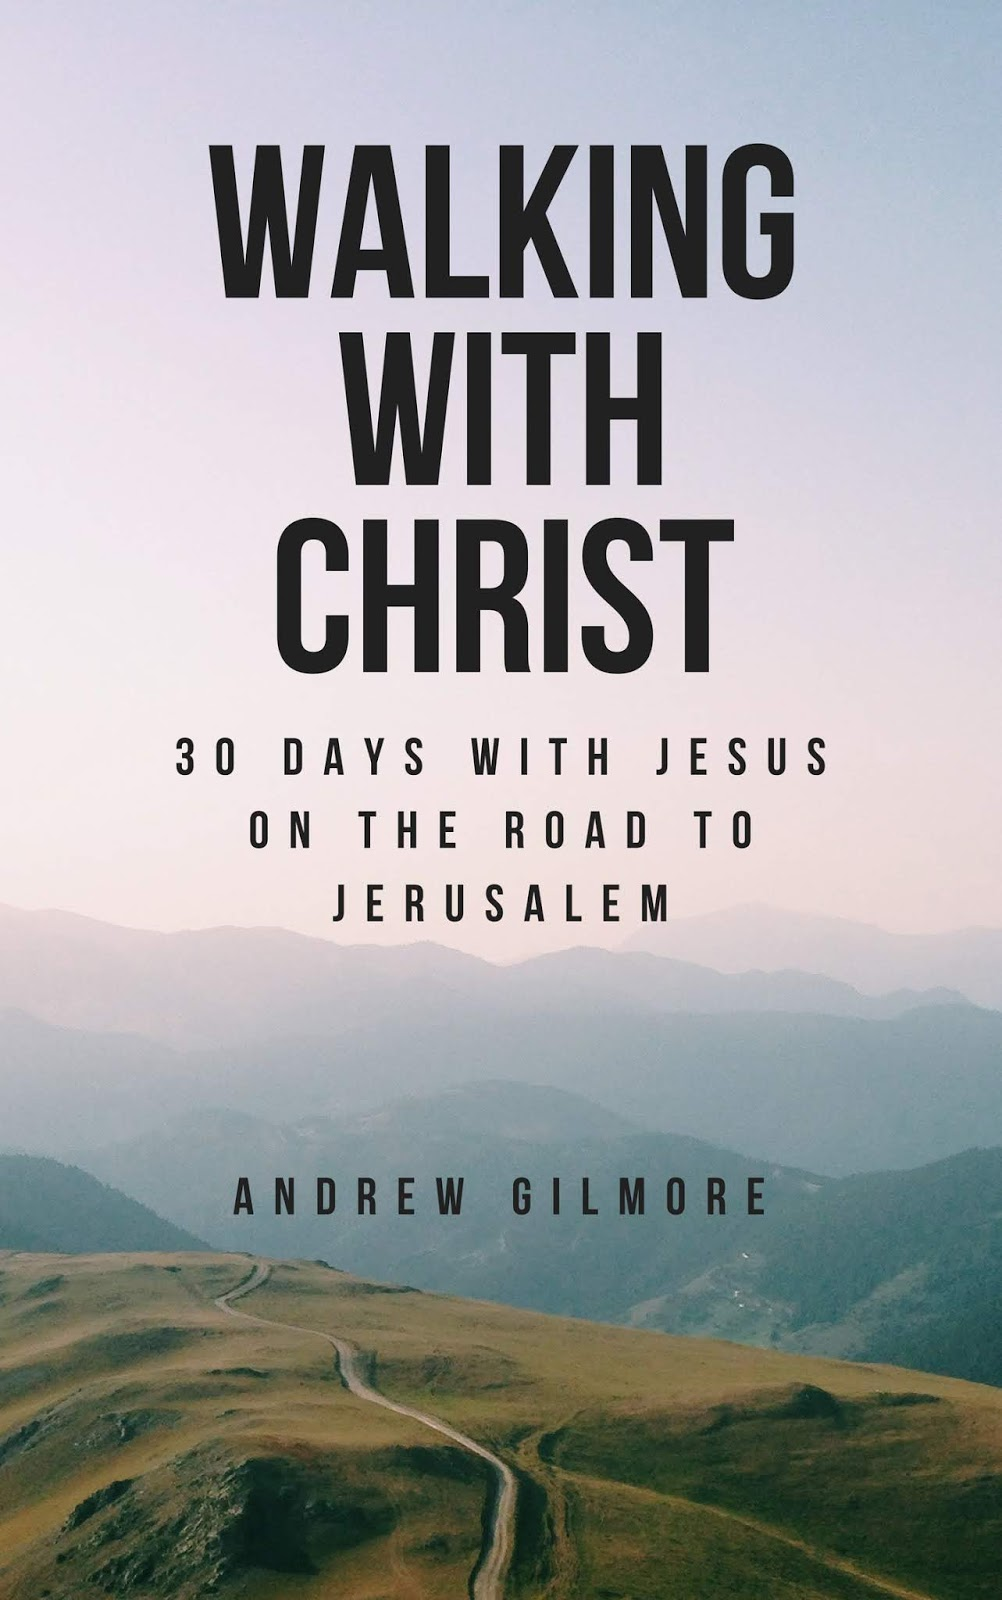 AndrewGilmore net: What Happens When You Invite Jesus into Your Home